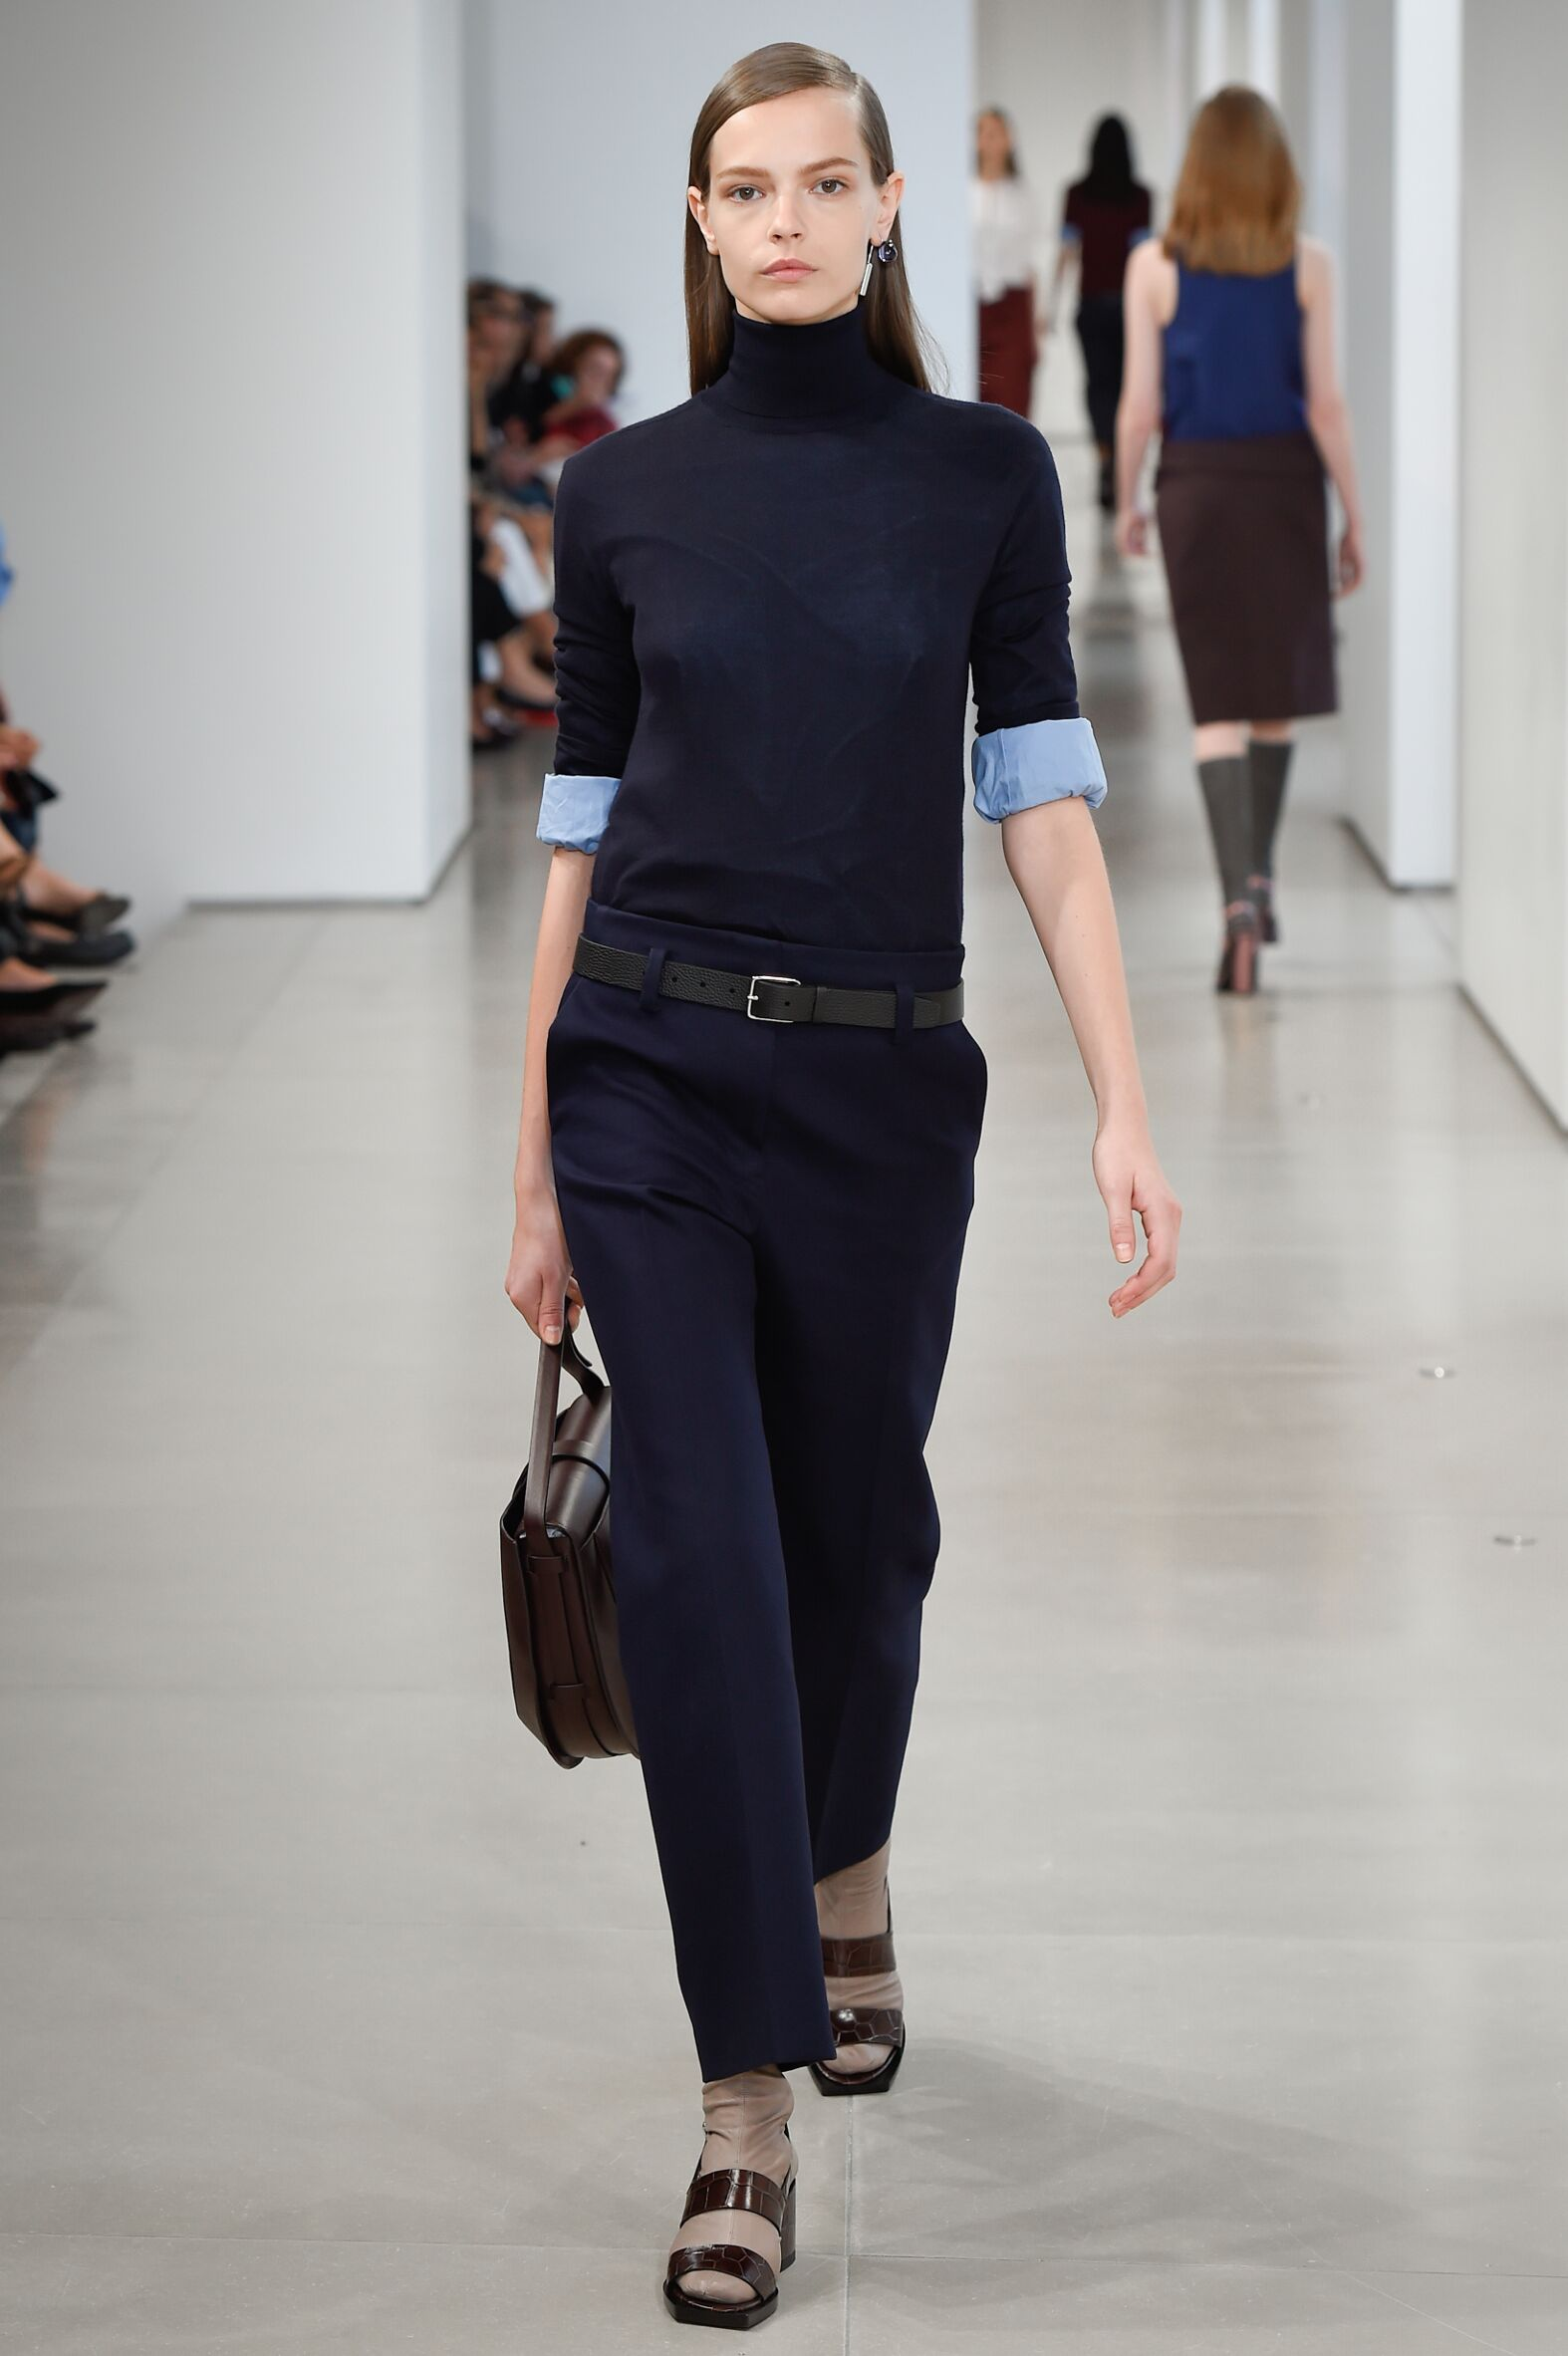 Fashion Woman Model Jil Sander Catwalk